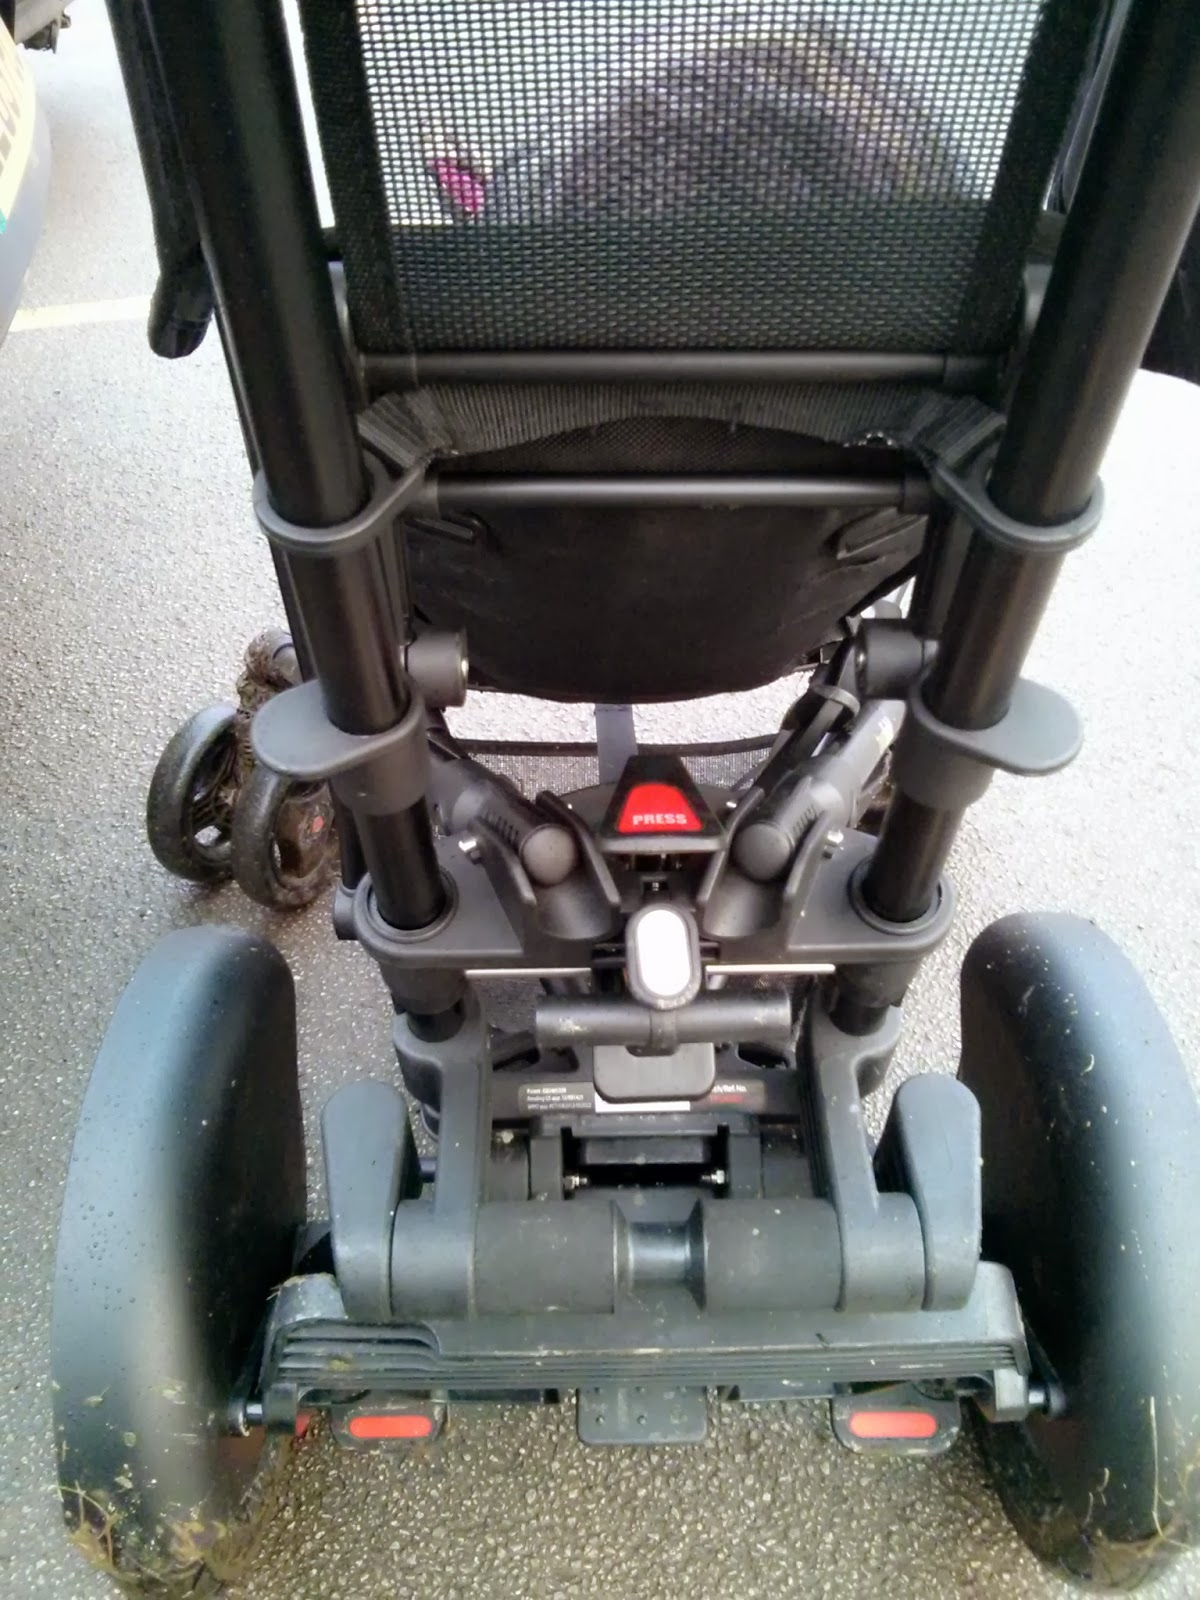 Back view of Micralite Twofold with seat lie down